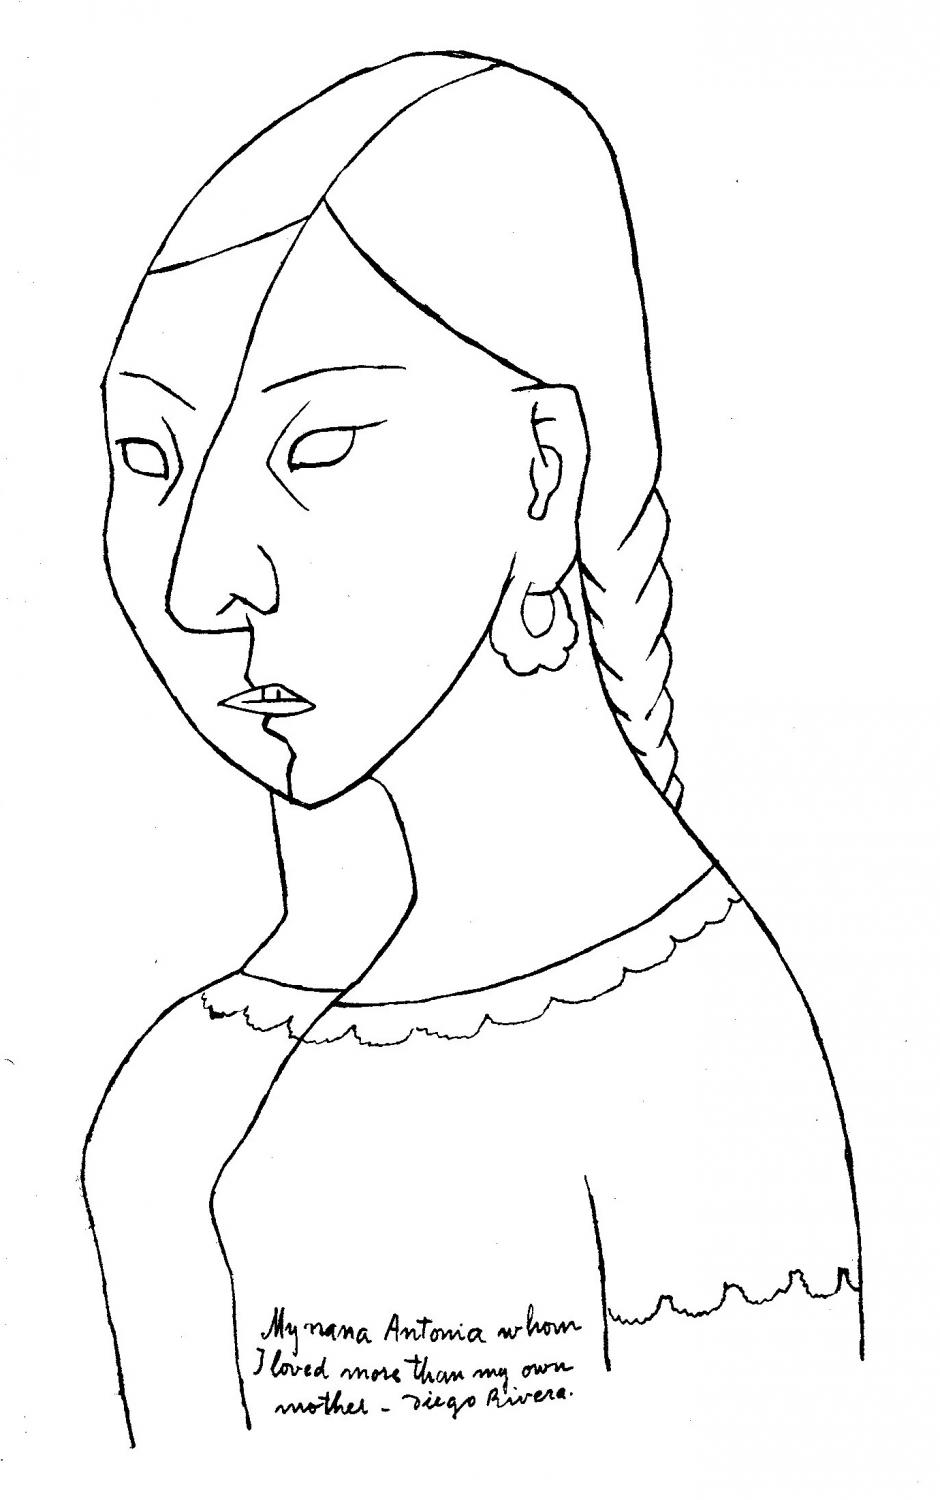 diego rivera coloring pages - photo#13